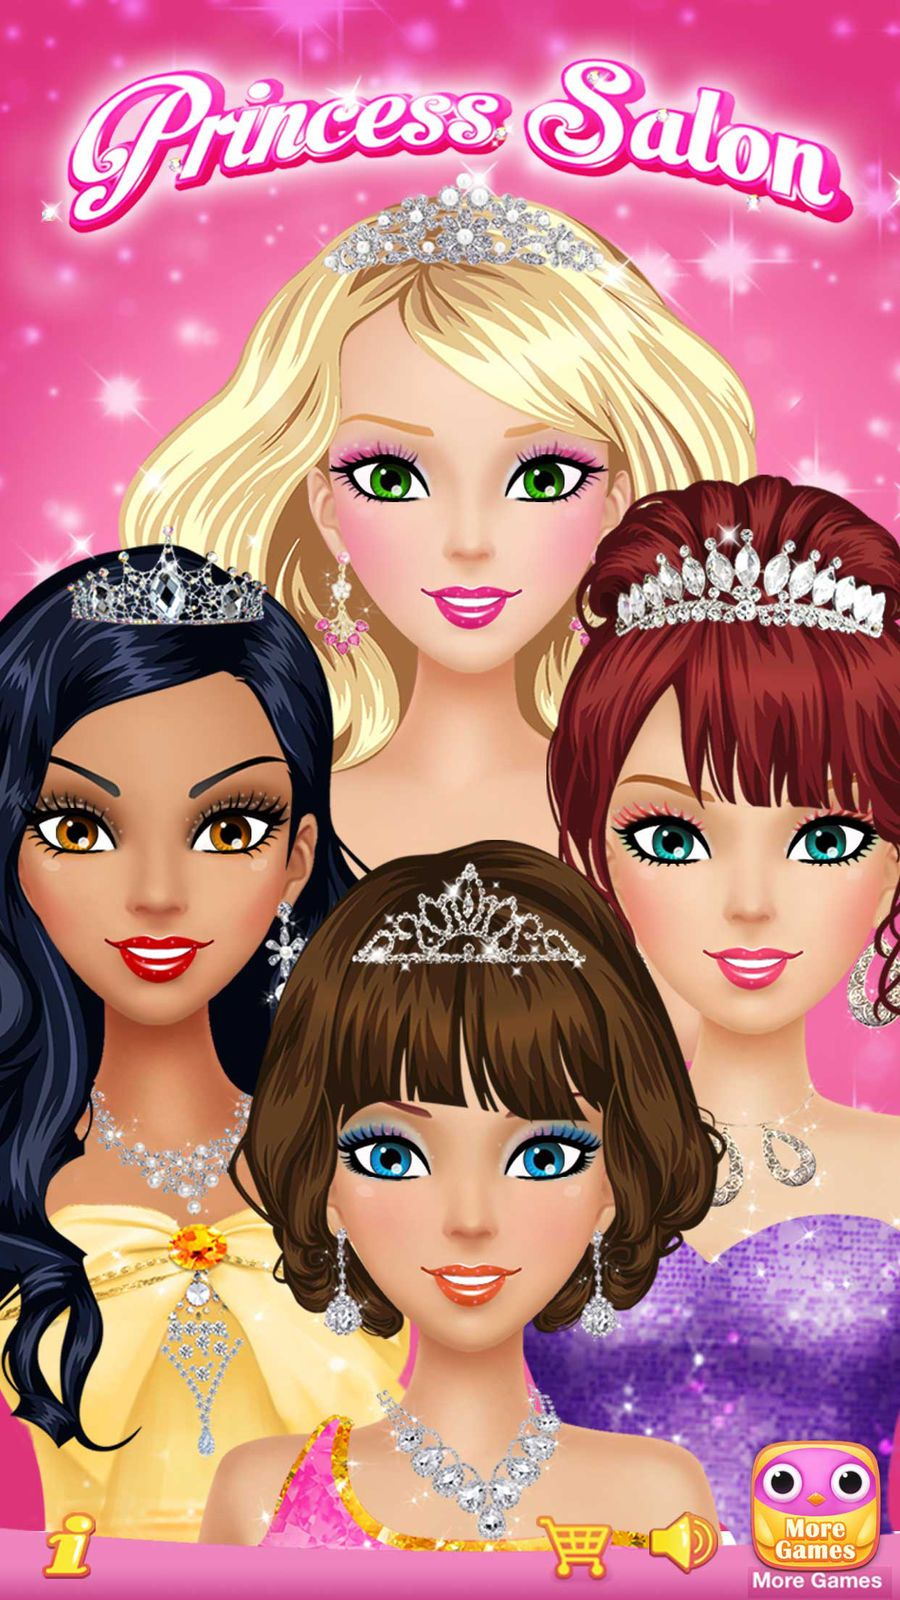 Barbie Solon Games : barbie, solon, games, Design, Fashion